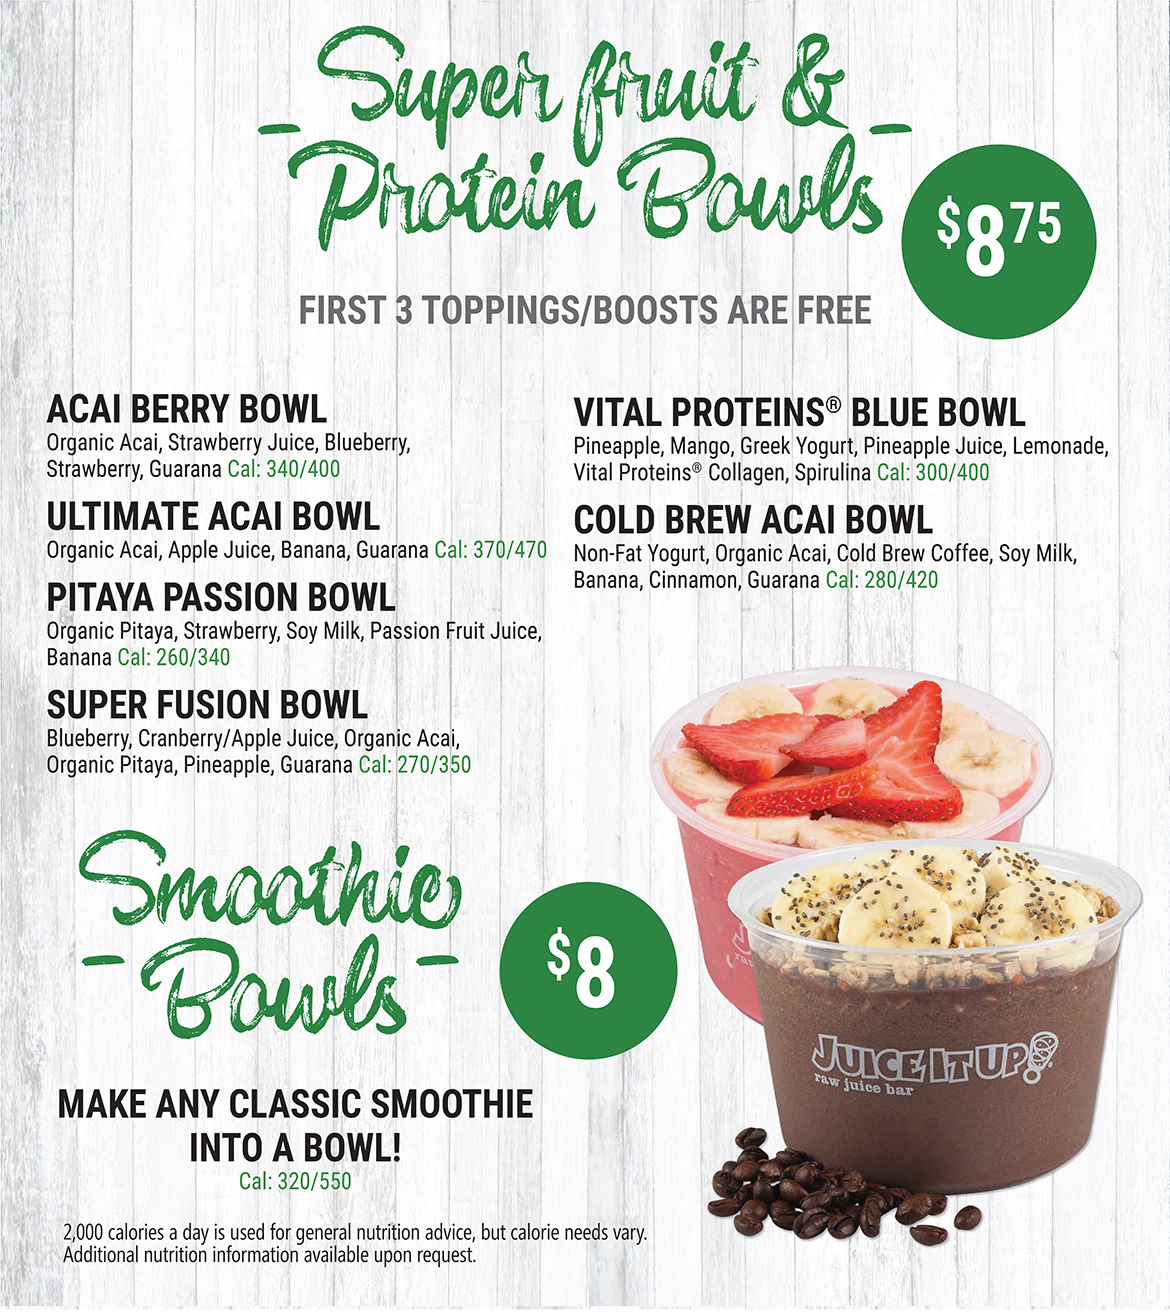 Super Fruit and Protein Bowls. $8.75. First three toppings/boosts are free. Acai Berry Bowl: Organic Acai, Strawberry Juice, Blueberry, Strawberry, and Guarana. Calories: between 340 and 400. Ultimate Acai Bowl: Organic Acai, Apple Juice, Banana, and Guarana. Calories: between 370 and 470. Pitaya Passion Bowl: Organic Pitaya, Strawberry, Soy Milk, Passion Fruit Juice, and Banana. Calories: between 260 and 340. Super Fusion Bowl: Blueberry, Cranberry/Apple Juice, Organic Acai, Organic Pitaya, Pineapple, and Guarana. Calories: between 270 and 350. Vital Proteins Blue Bowl: Pineapple, Mango, Greek Yogurt, Pineapple Juice, Lemonade, Vital Proteins Collagen, and Spirulina. Calories: between 300 and 400. Cold Brew Acai Bowl: Non-Fat Yogurt, Organic Acai, Cold Brew Coffee, Soy Milk, Banana, Cinnamon, and Guarana. Calories: between 280 and 420. Smoothie Bowls. $8. Make any classic smoothie into a bowl! Calories: between 320 and 550.